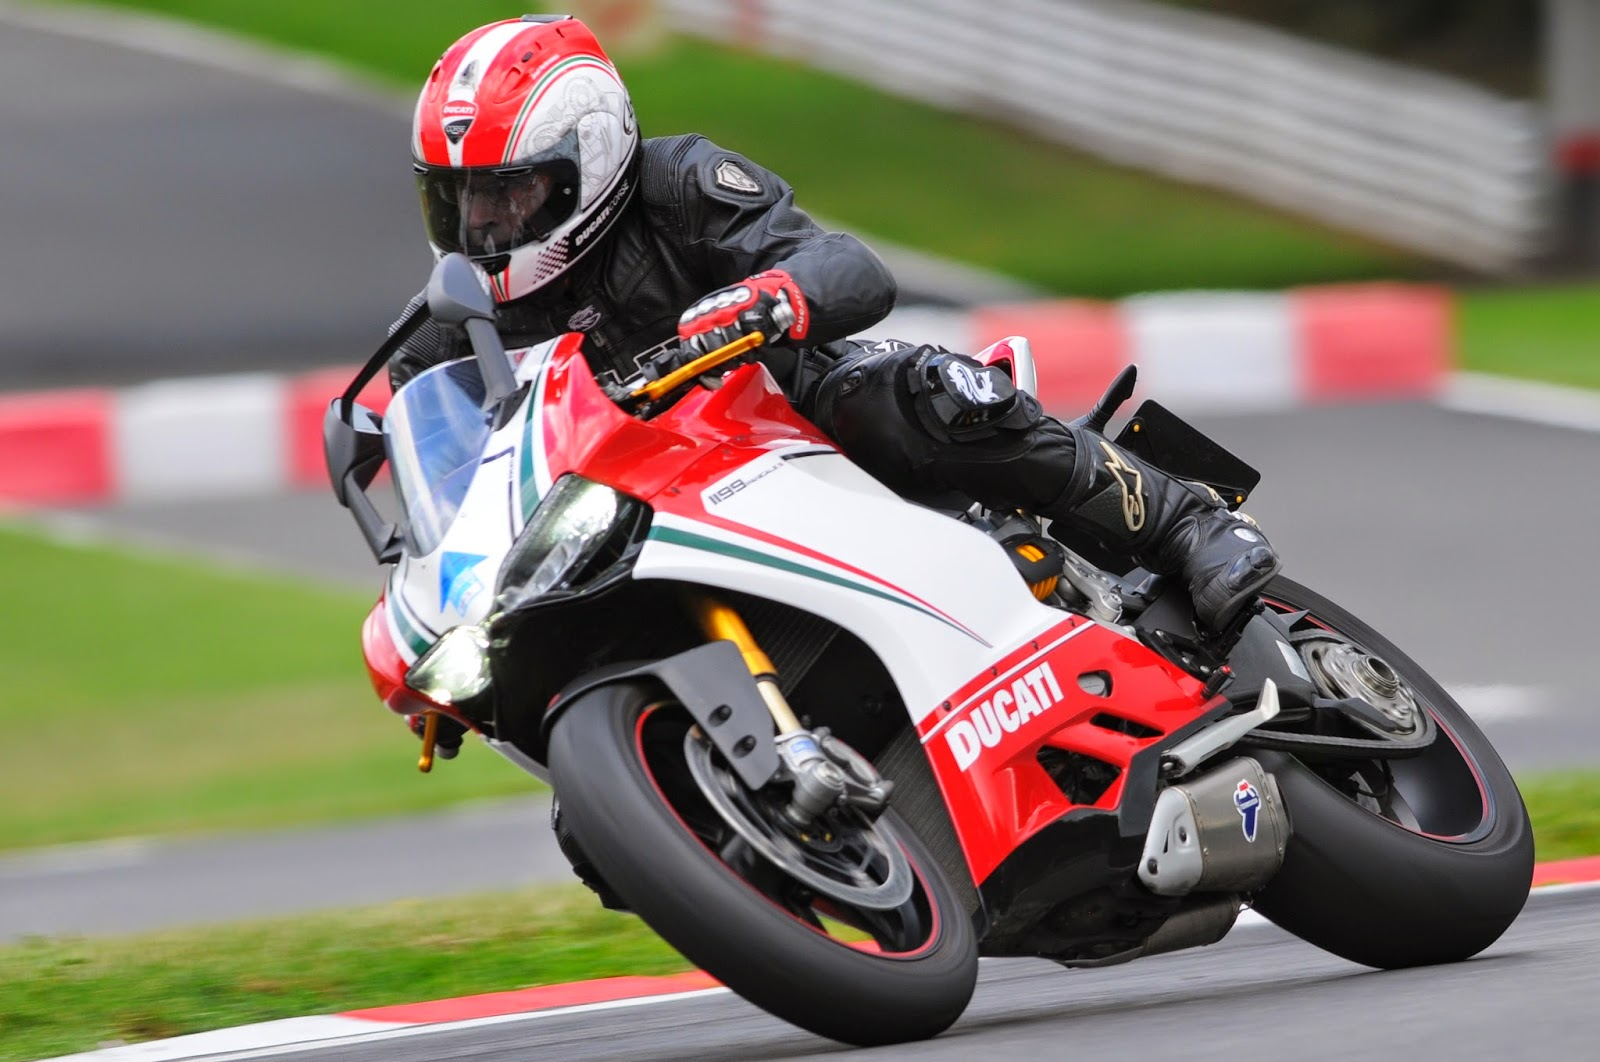 Ducati Panigale 1199 At Brands Hatch